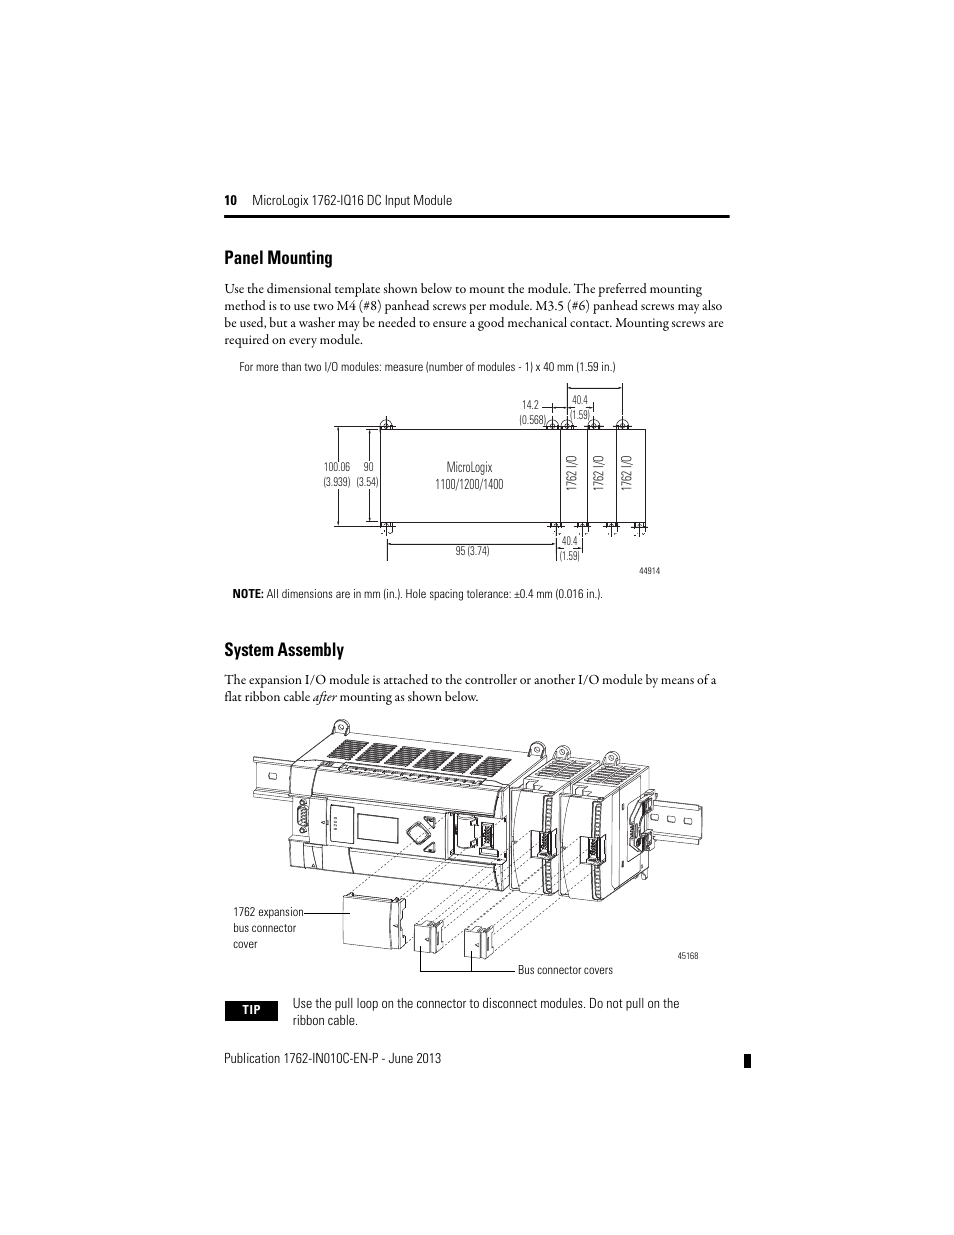 Wh5 120 L Wiring Diagram Another Blog About Workhorse 5 Ballast 120l Led 110v Fulham